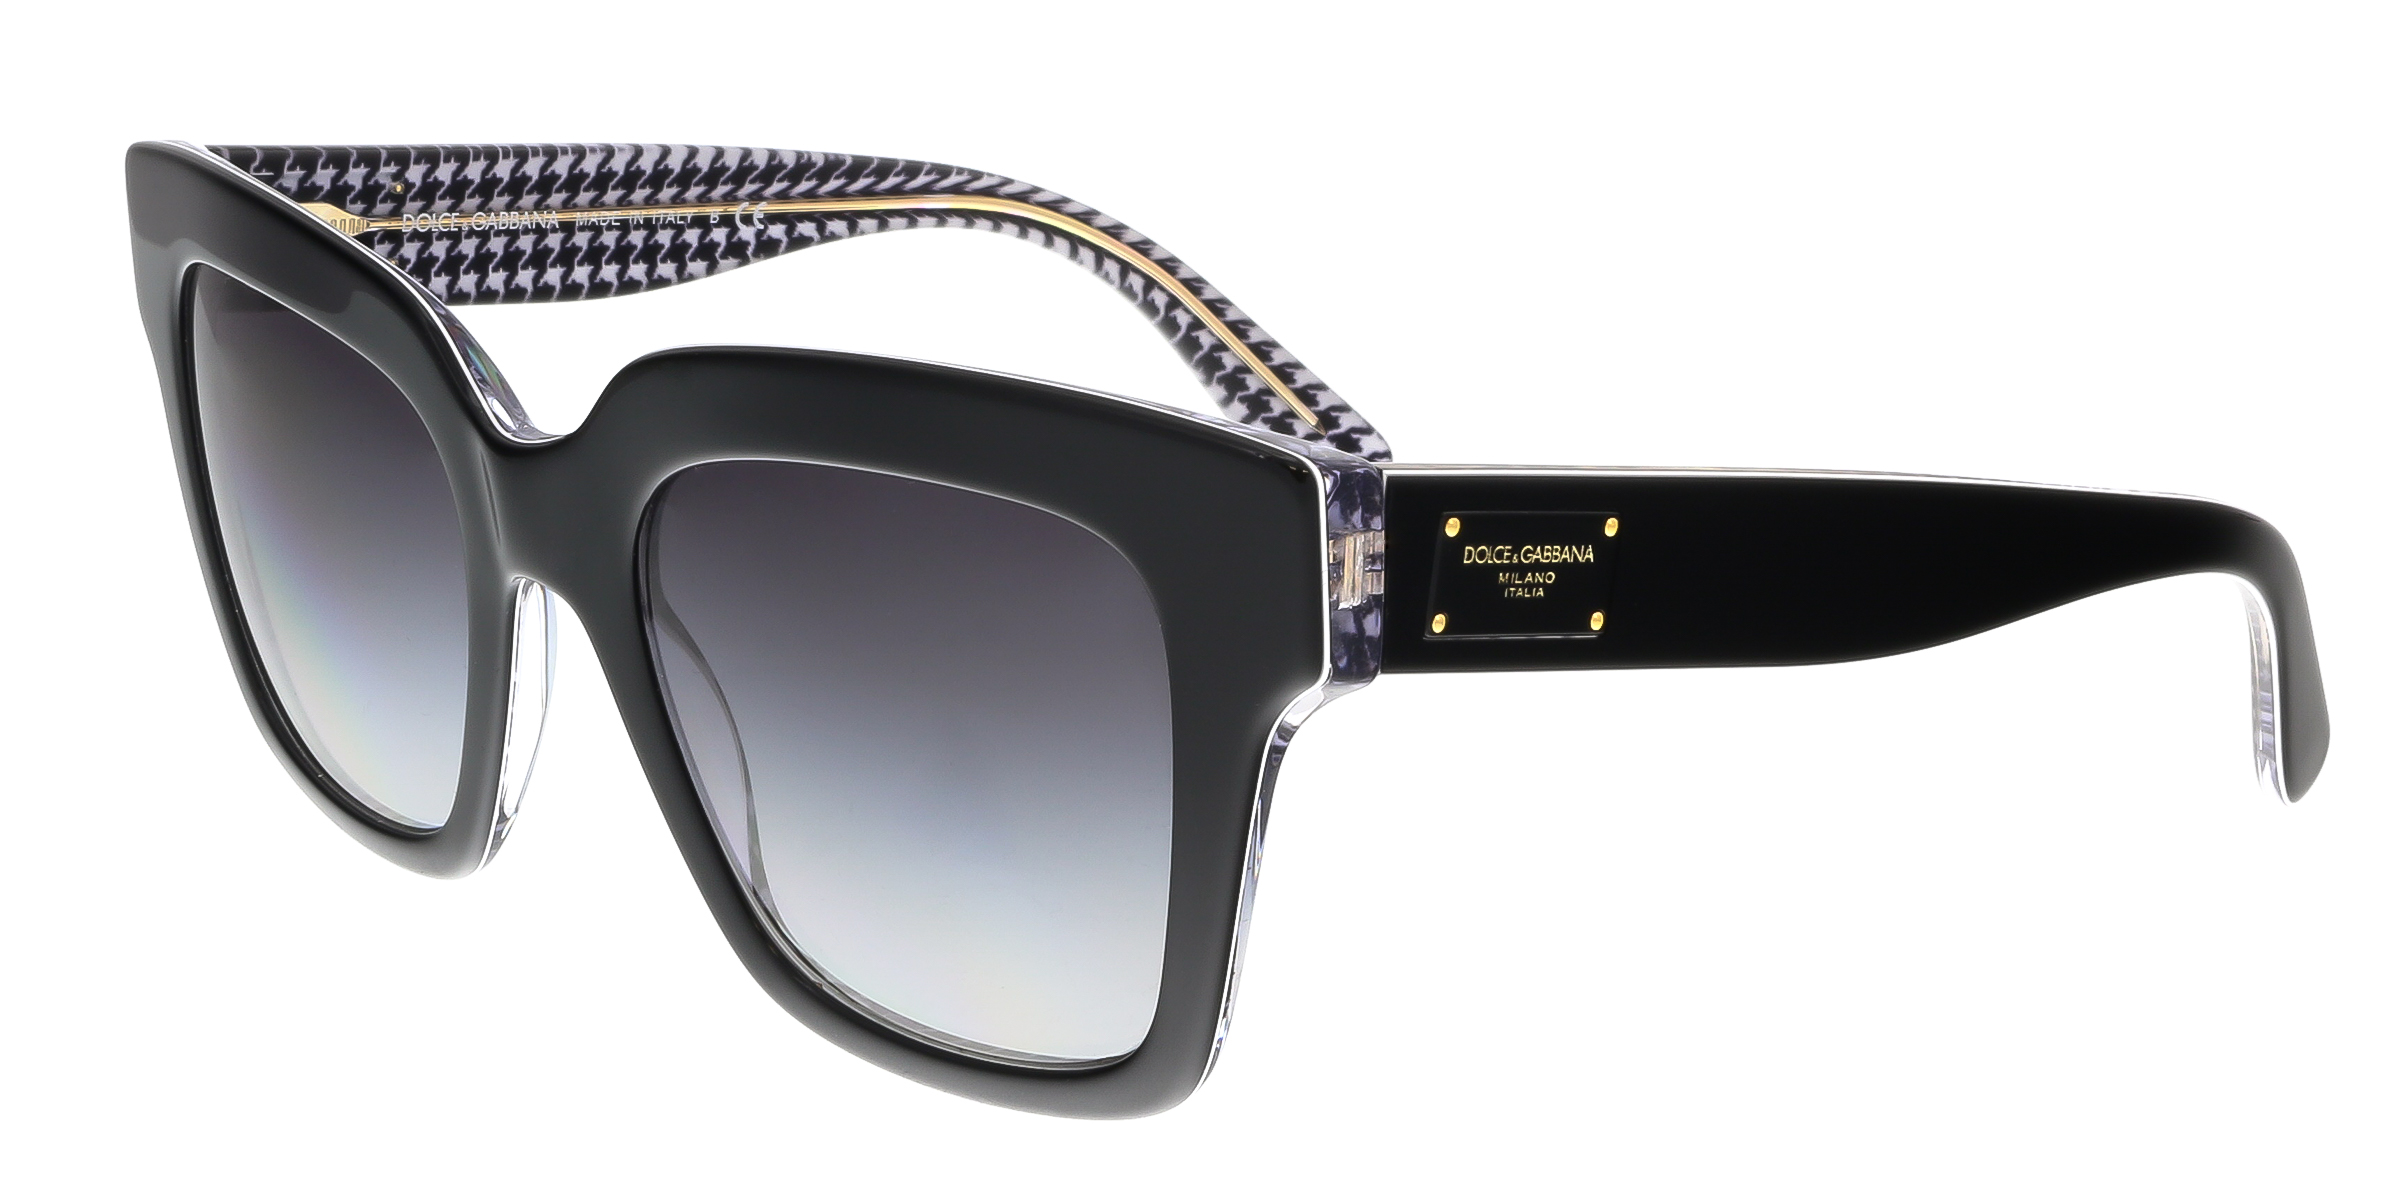 Dolce & Gabbana DG4286 30808G Black Square Houndstooth Sunglasses